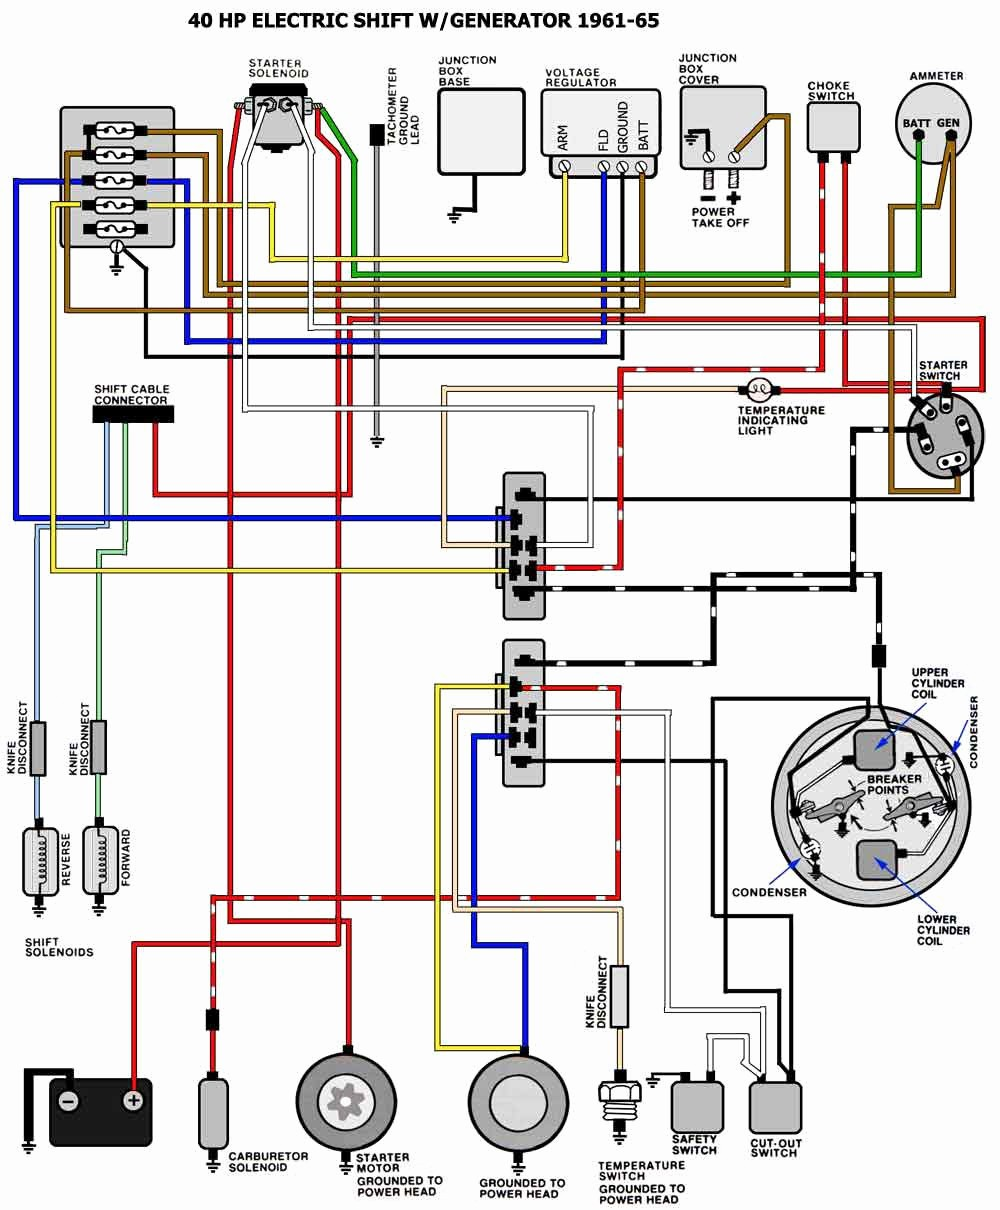 WRG-9914] Mariner Outboard Wiring Harness Diagram on